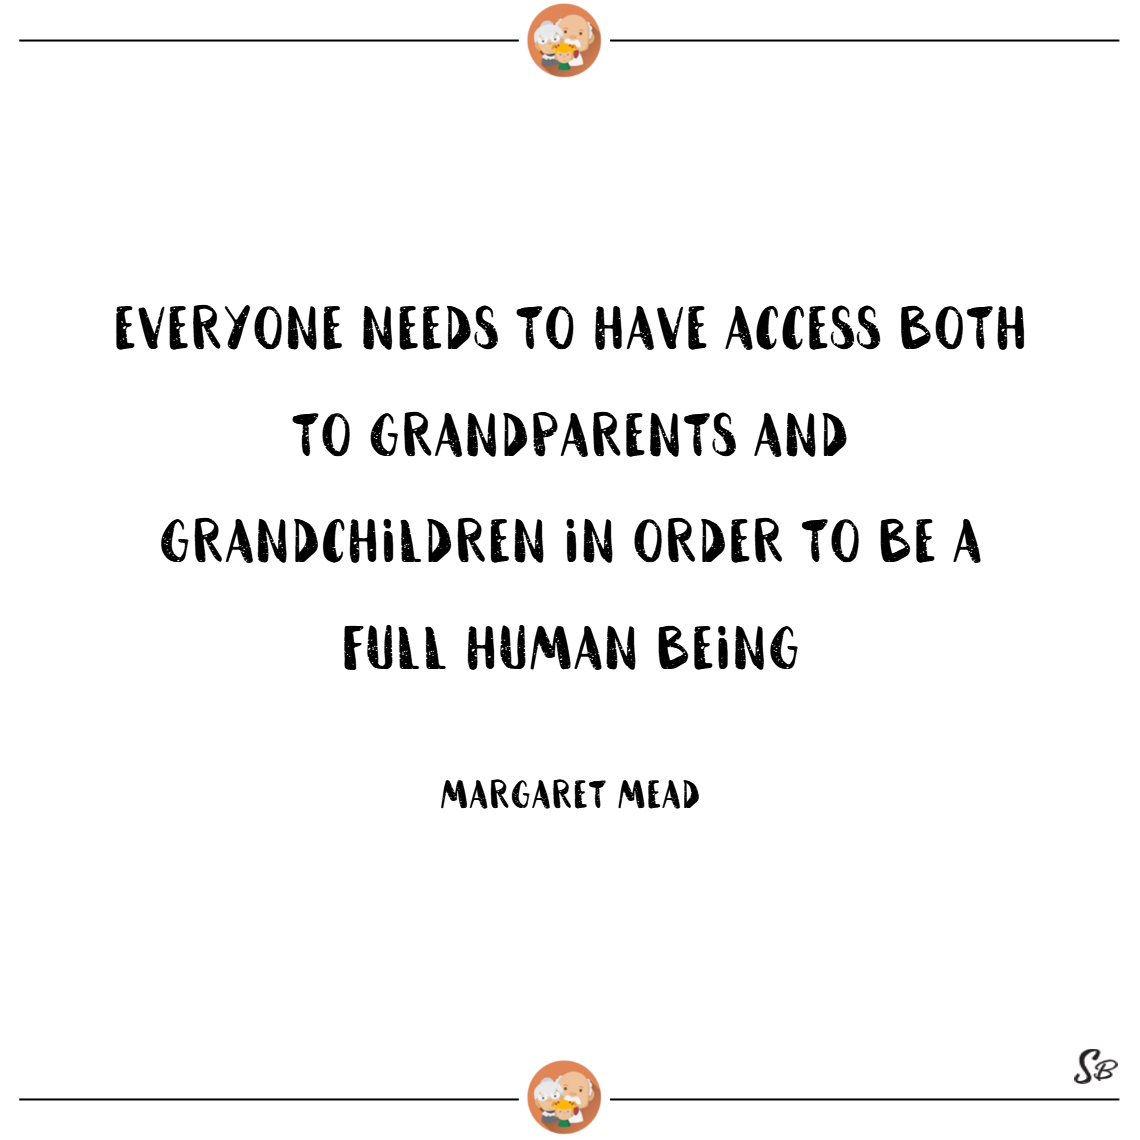 Everyone needs to have access both to grandparents and grandchildren in order to be a full human being. – margaret mead